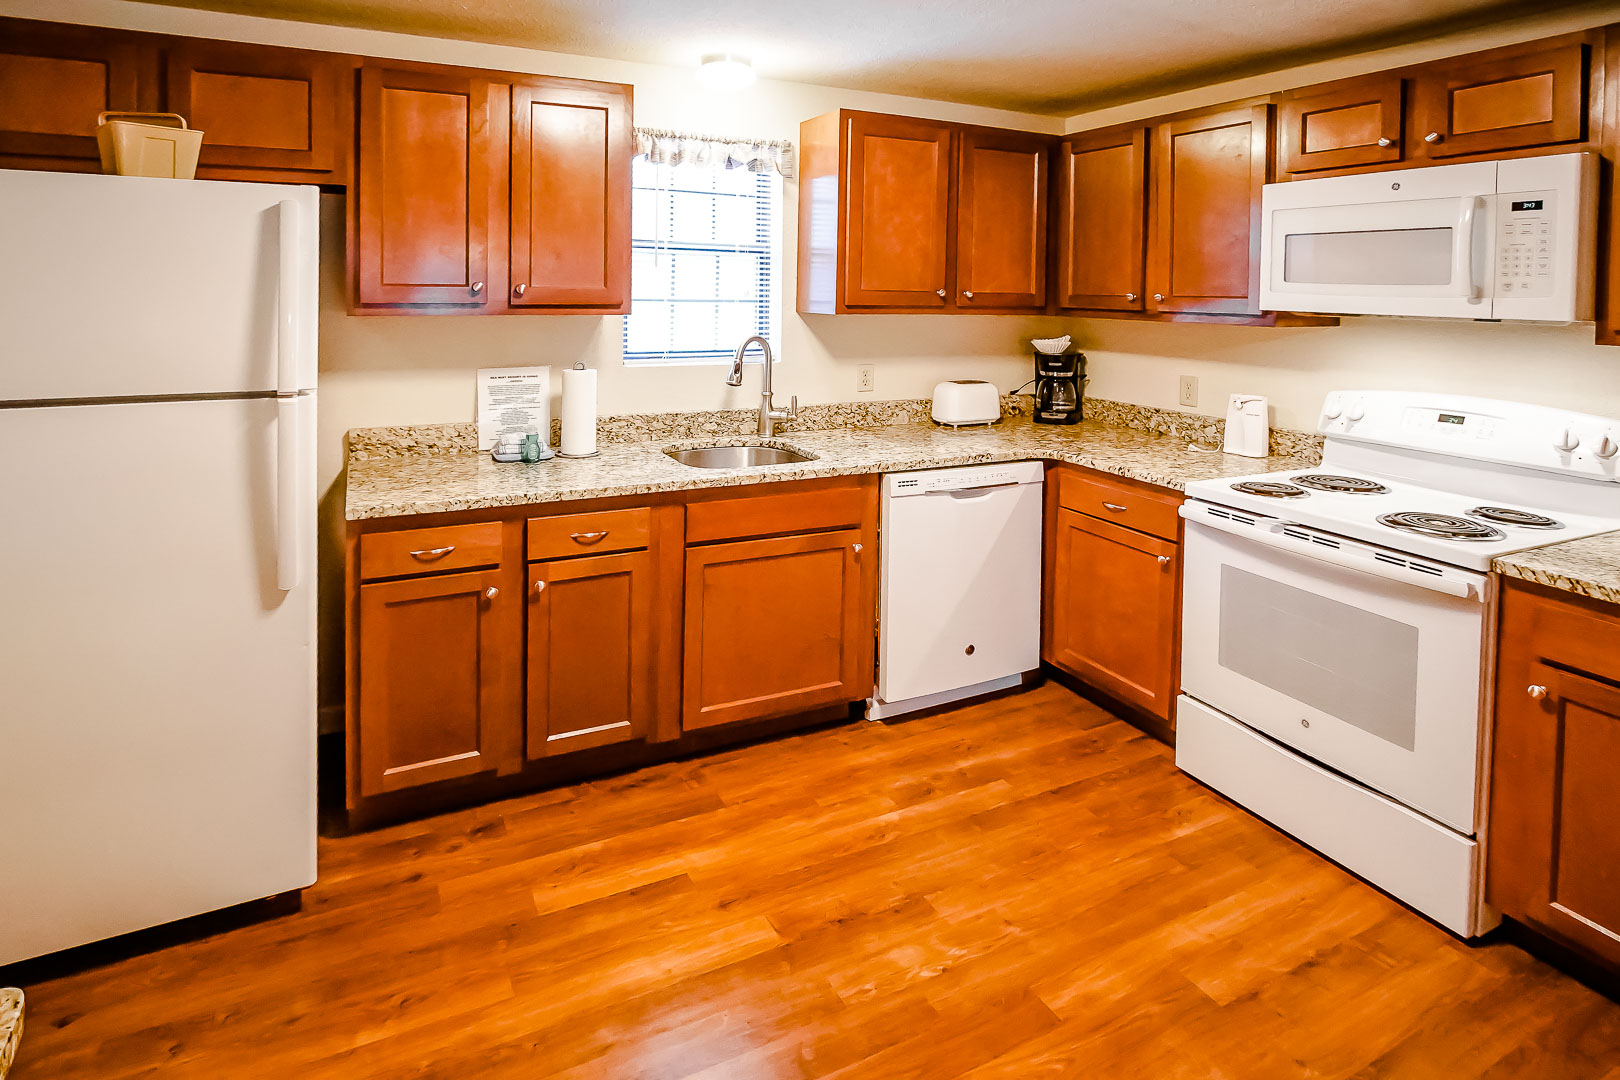 An expansive view of a fully equipped kitchen at VRI's Sea Mist Resort in Massachusetts.